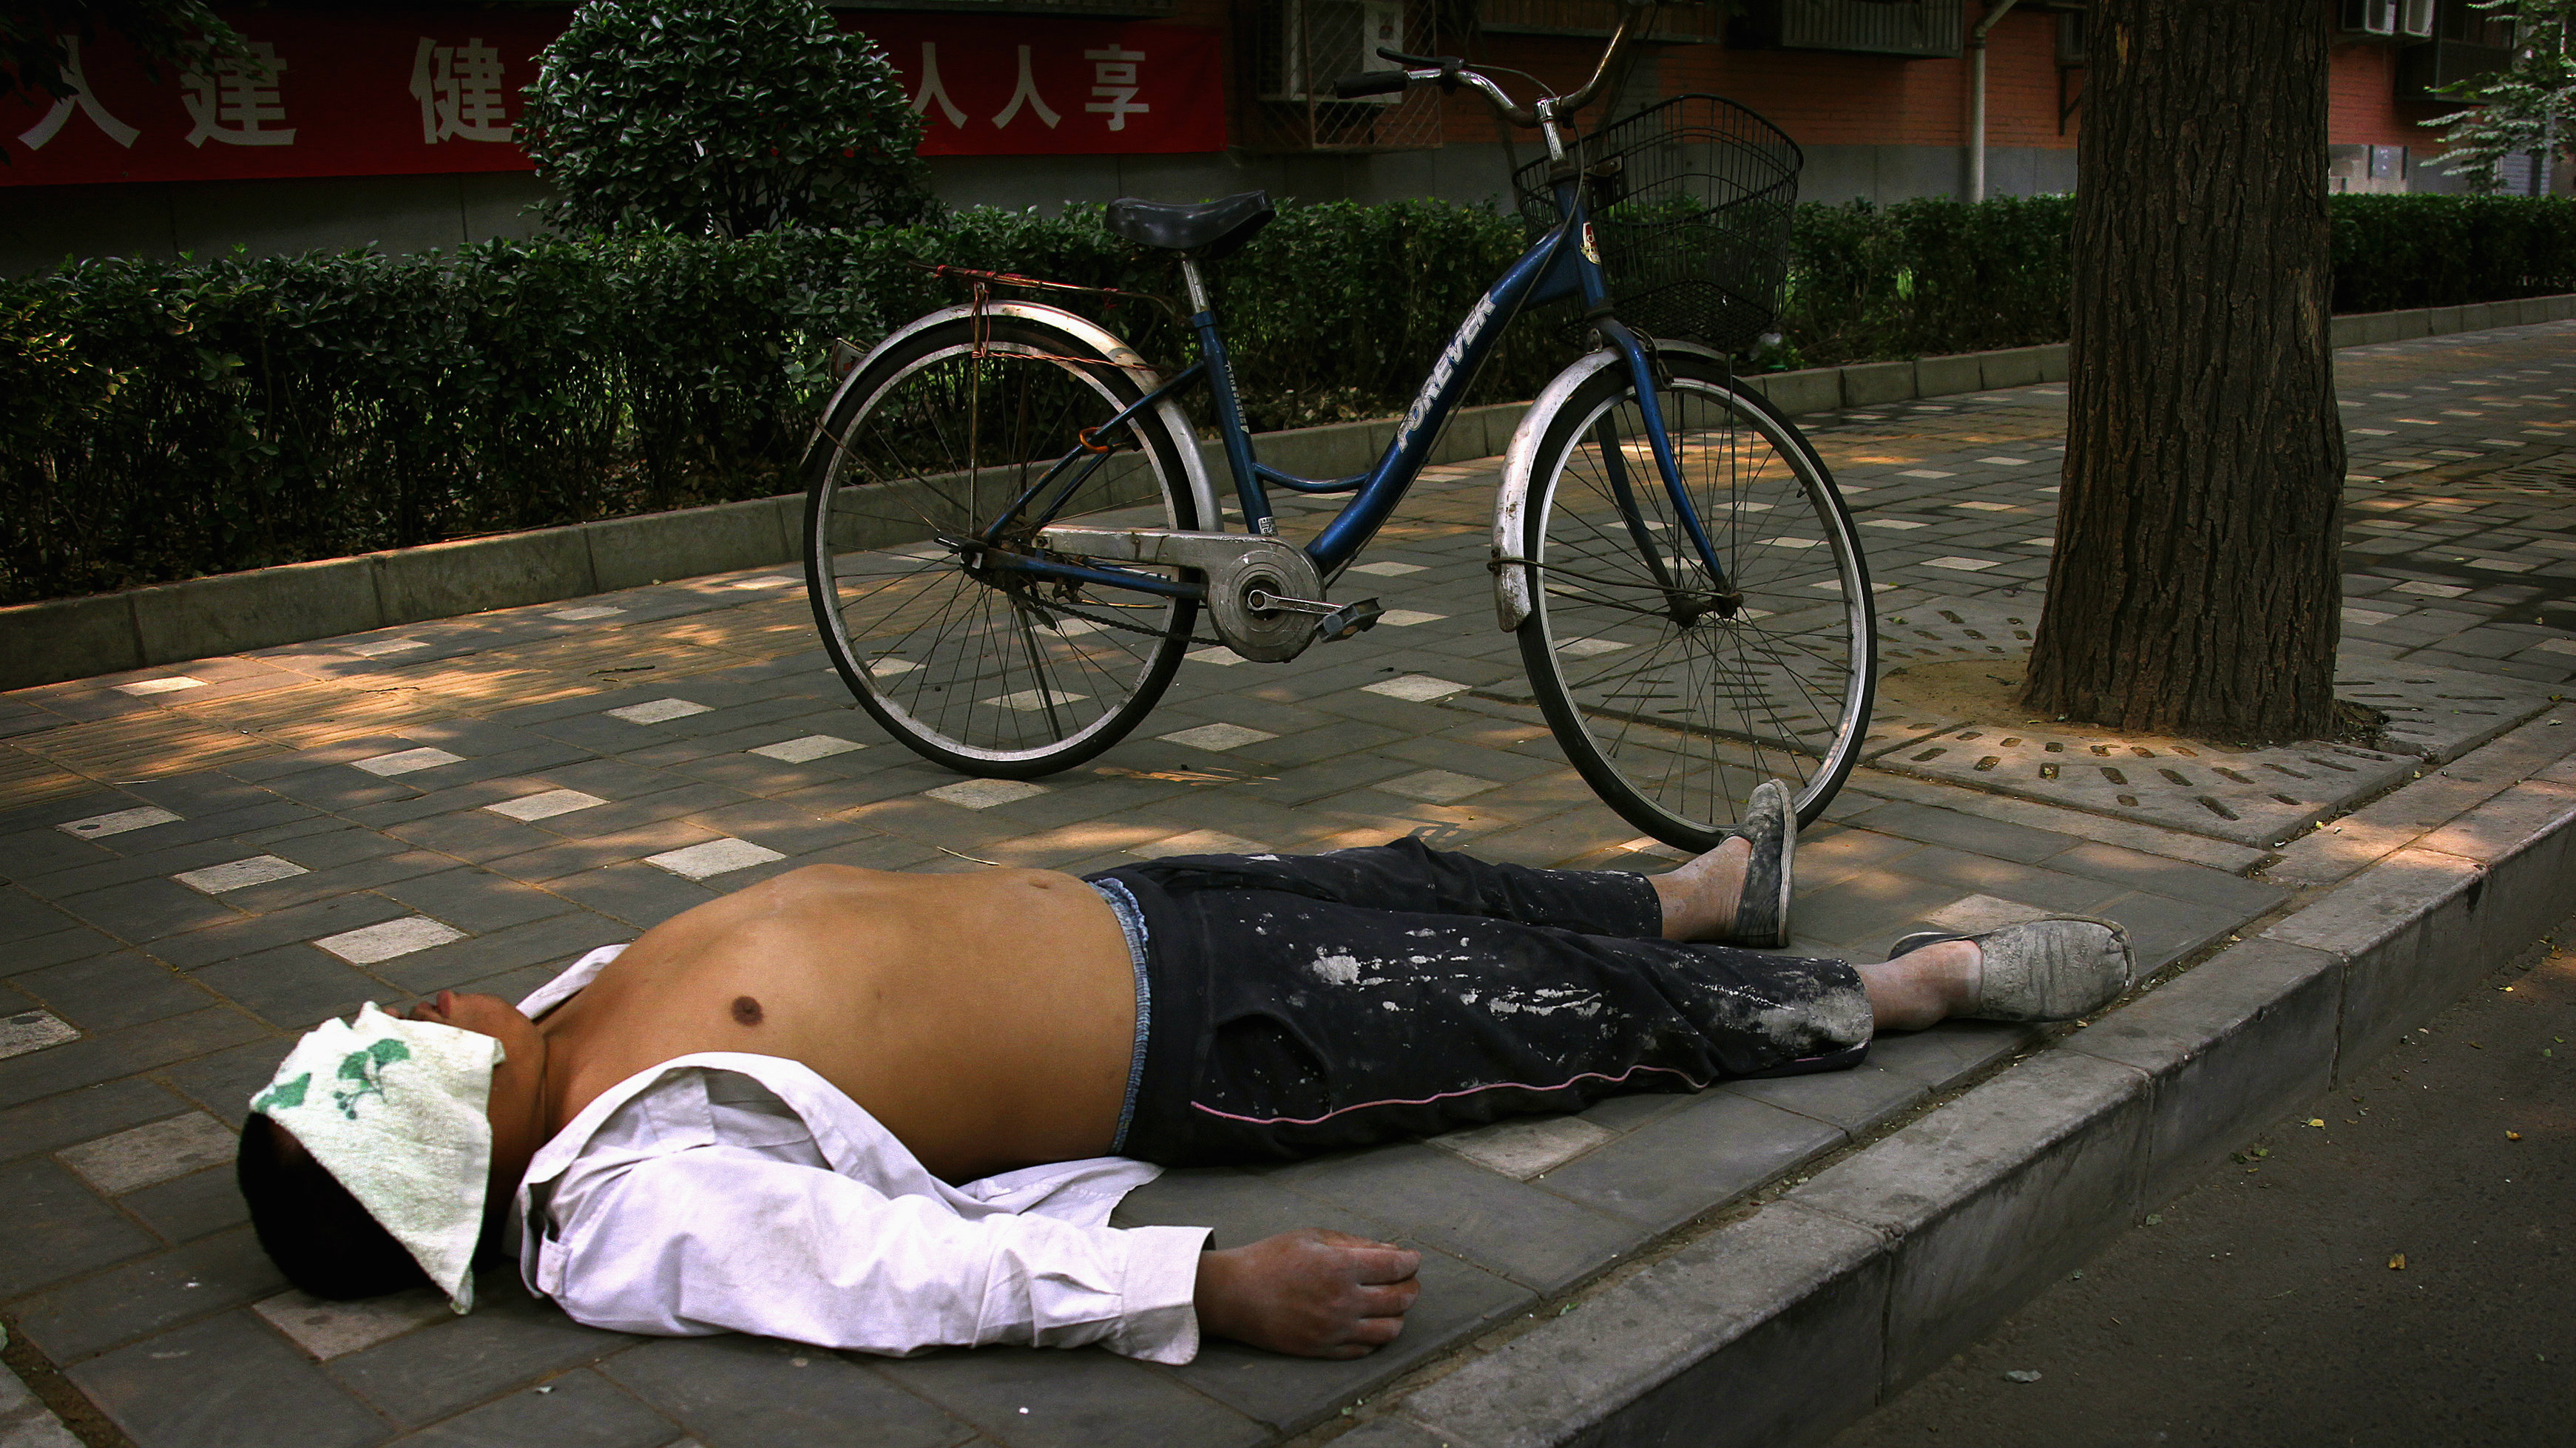 """A man sleeps next to his bicycle on a footpath along a Chinese alley known as a """"Hutong'', during a hot day in central Beijing June 21, 2012. REUTERS/David Gray"""